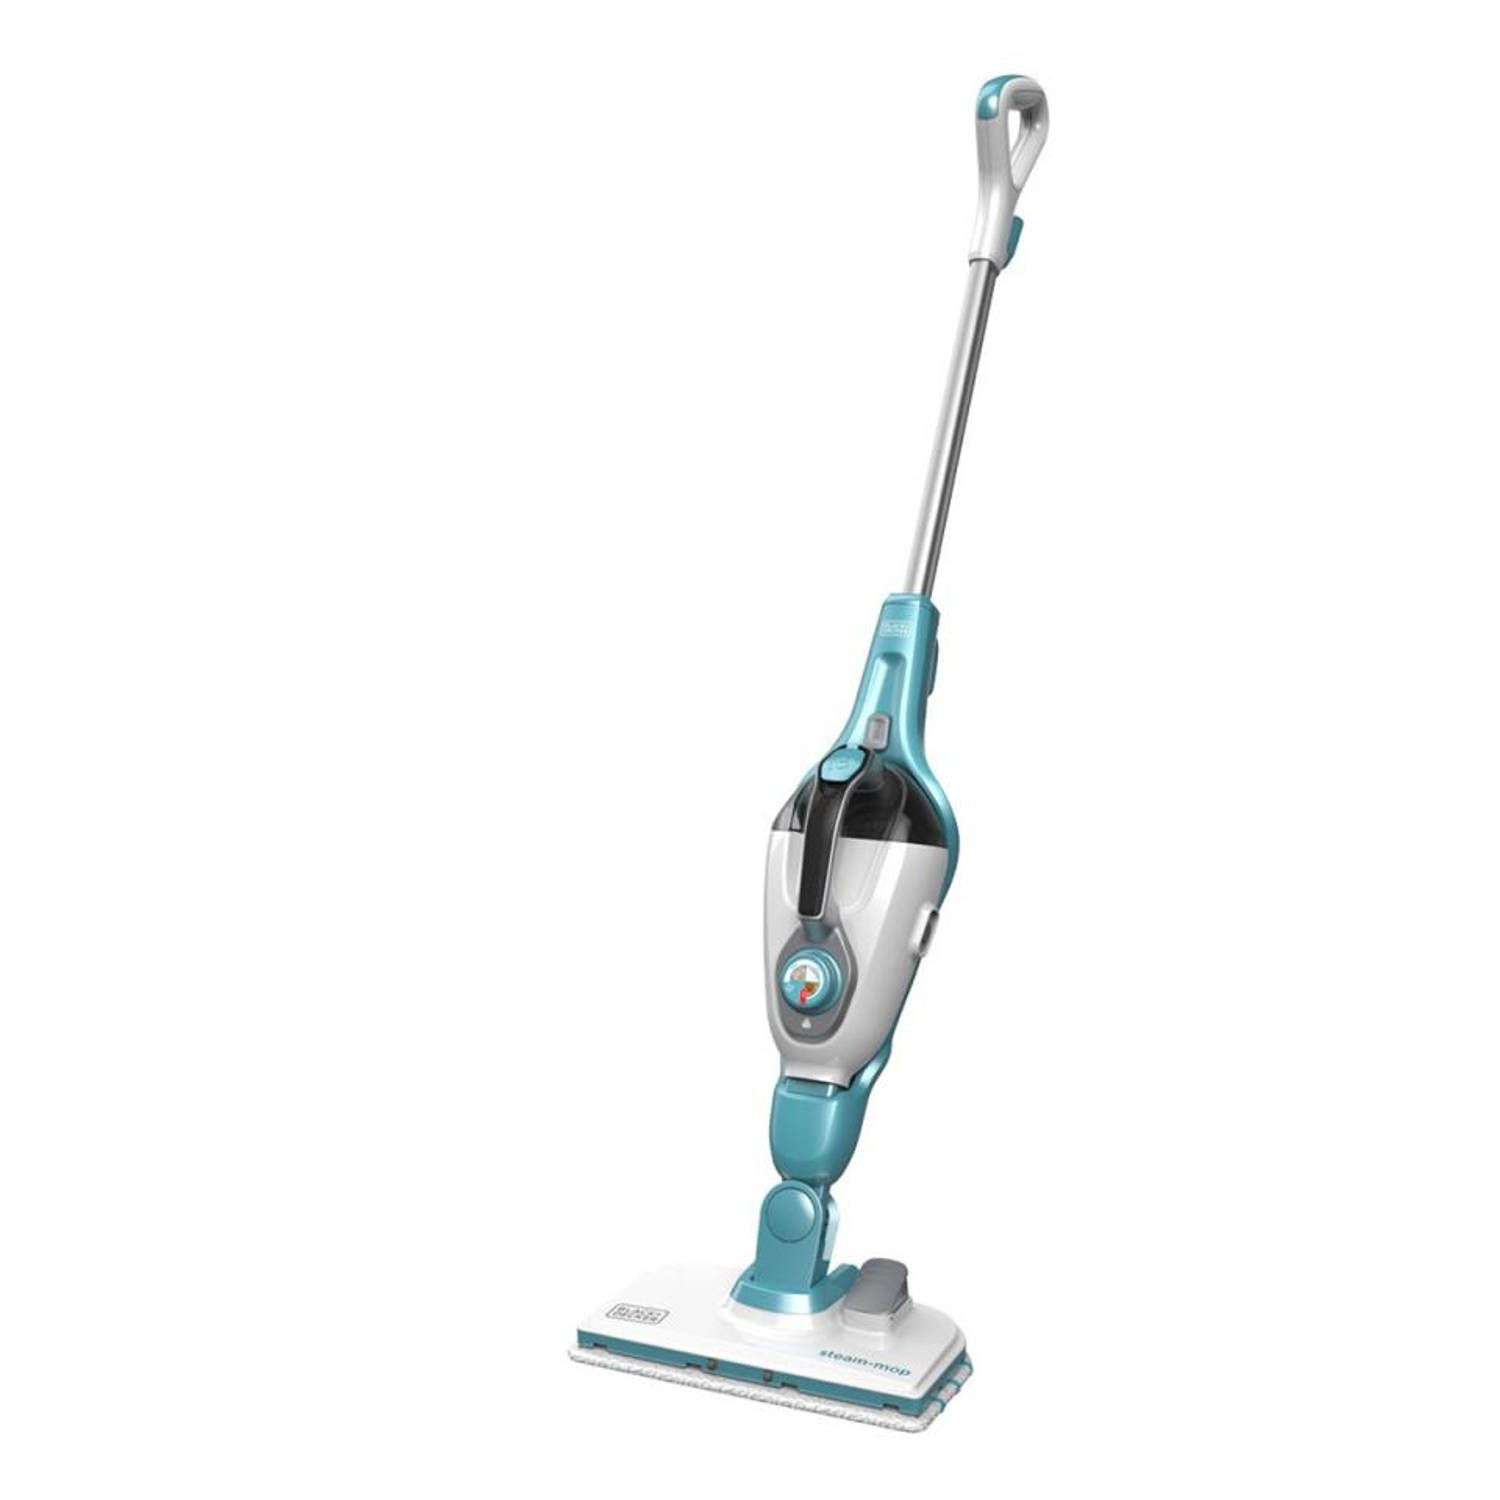 Black & Decker steam mop 11-in-1 FSMH13101SM-QS